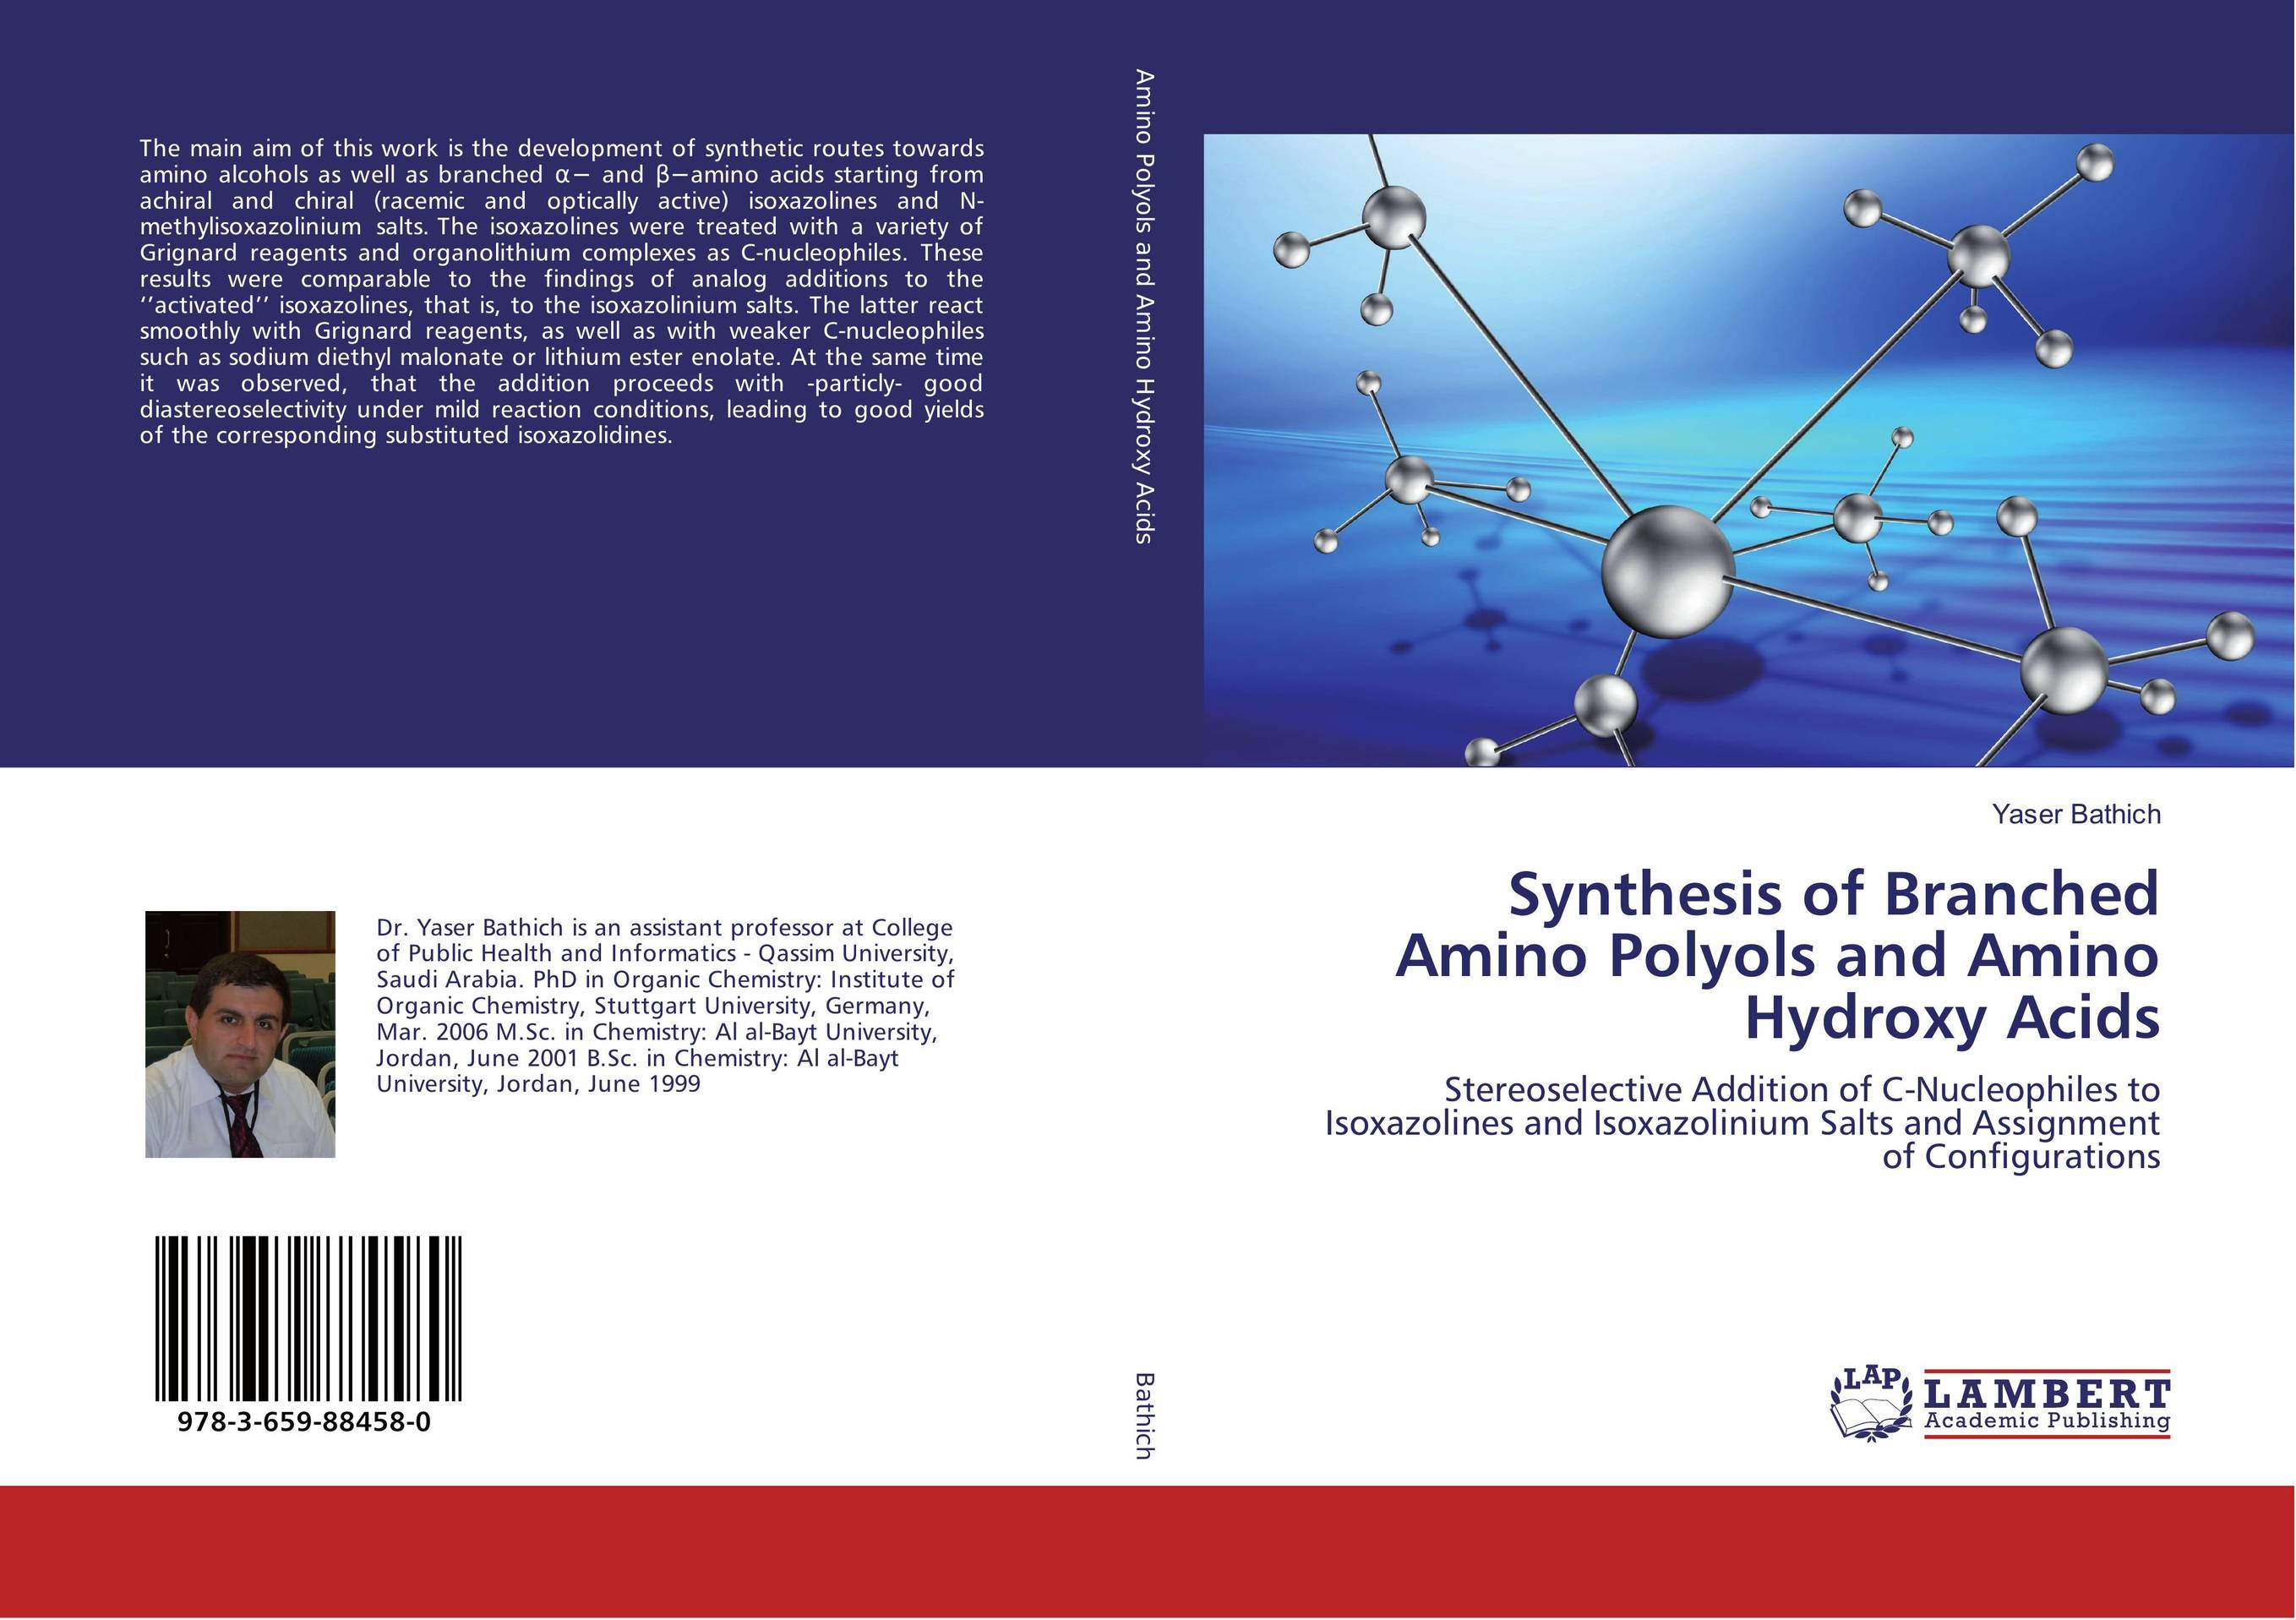 Synthesis of Branched Amino Polyols and Amino Hydroxy Acids amino aminet 110 где пульт